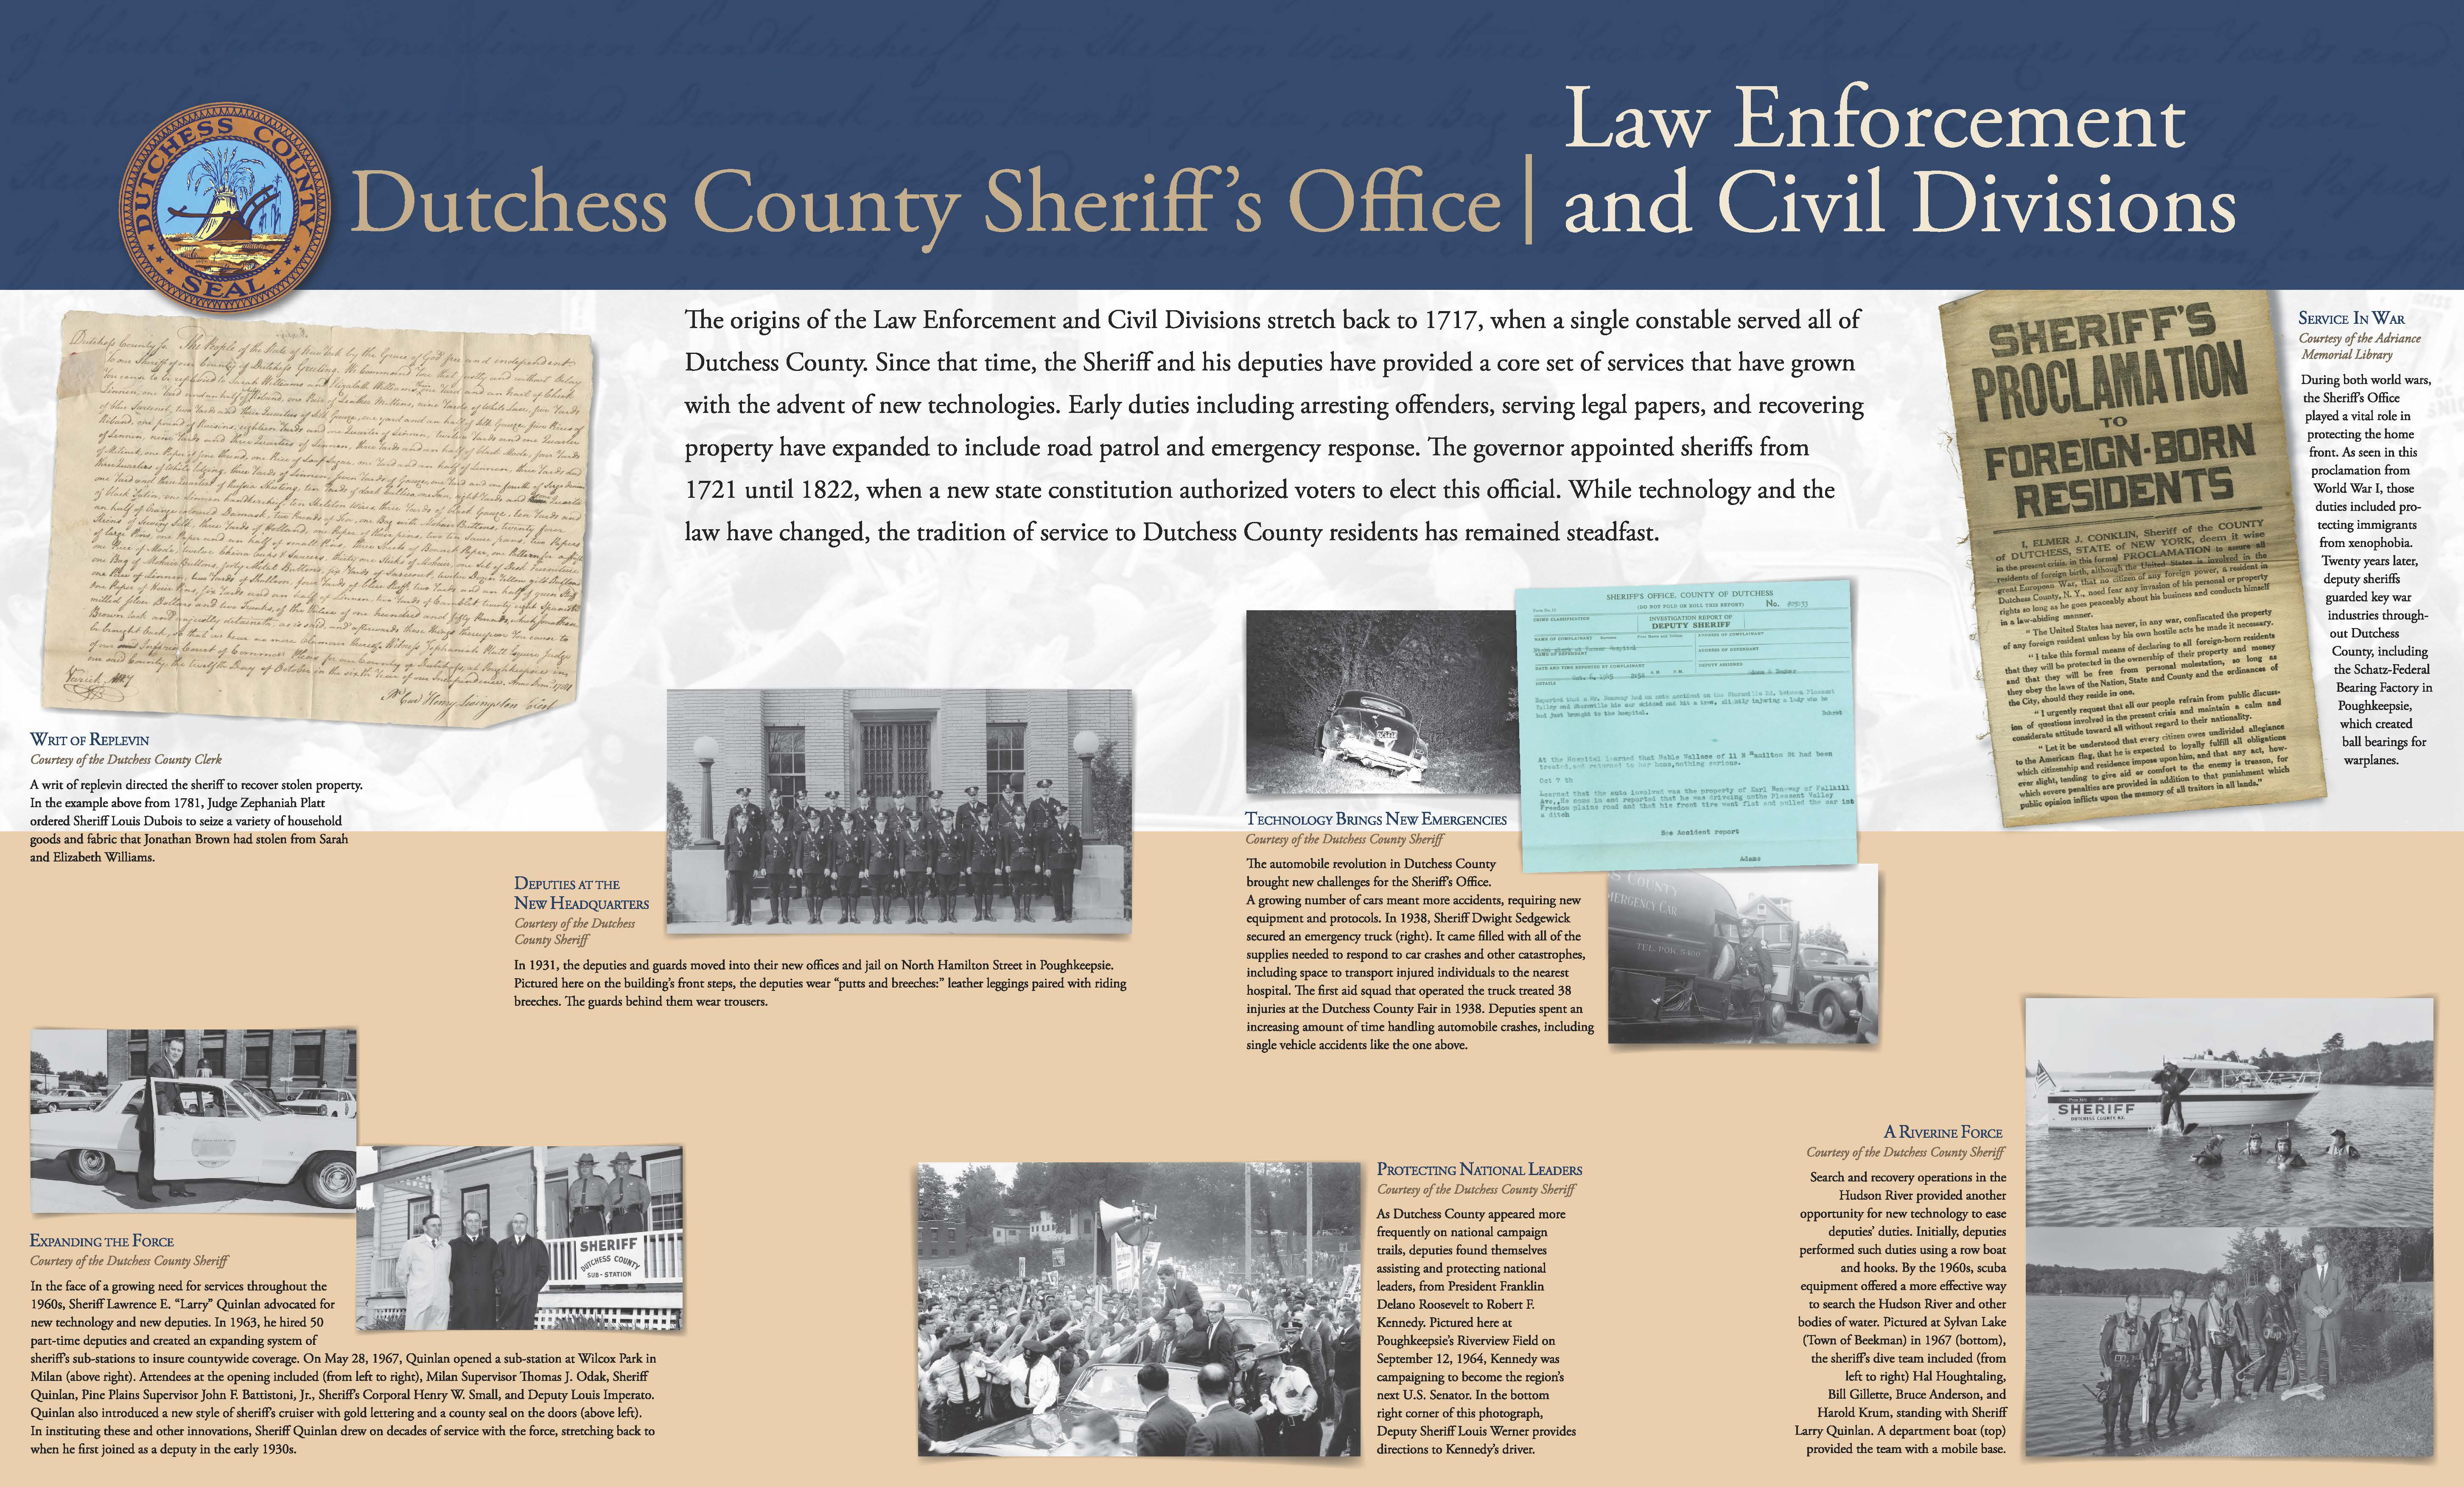 Dutchess County Sheriff's Office - Law Enforcement and Civil Divisions